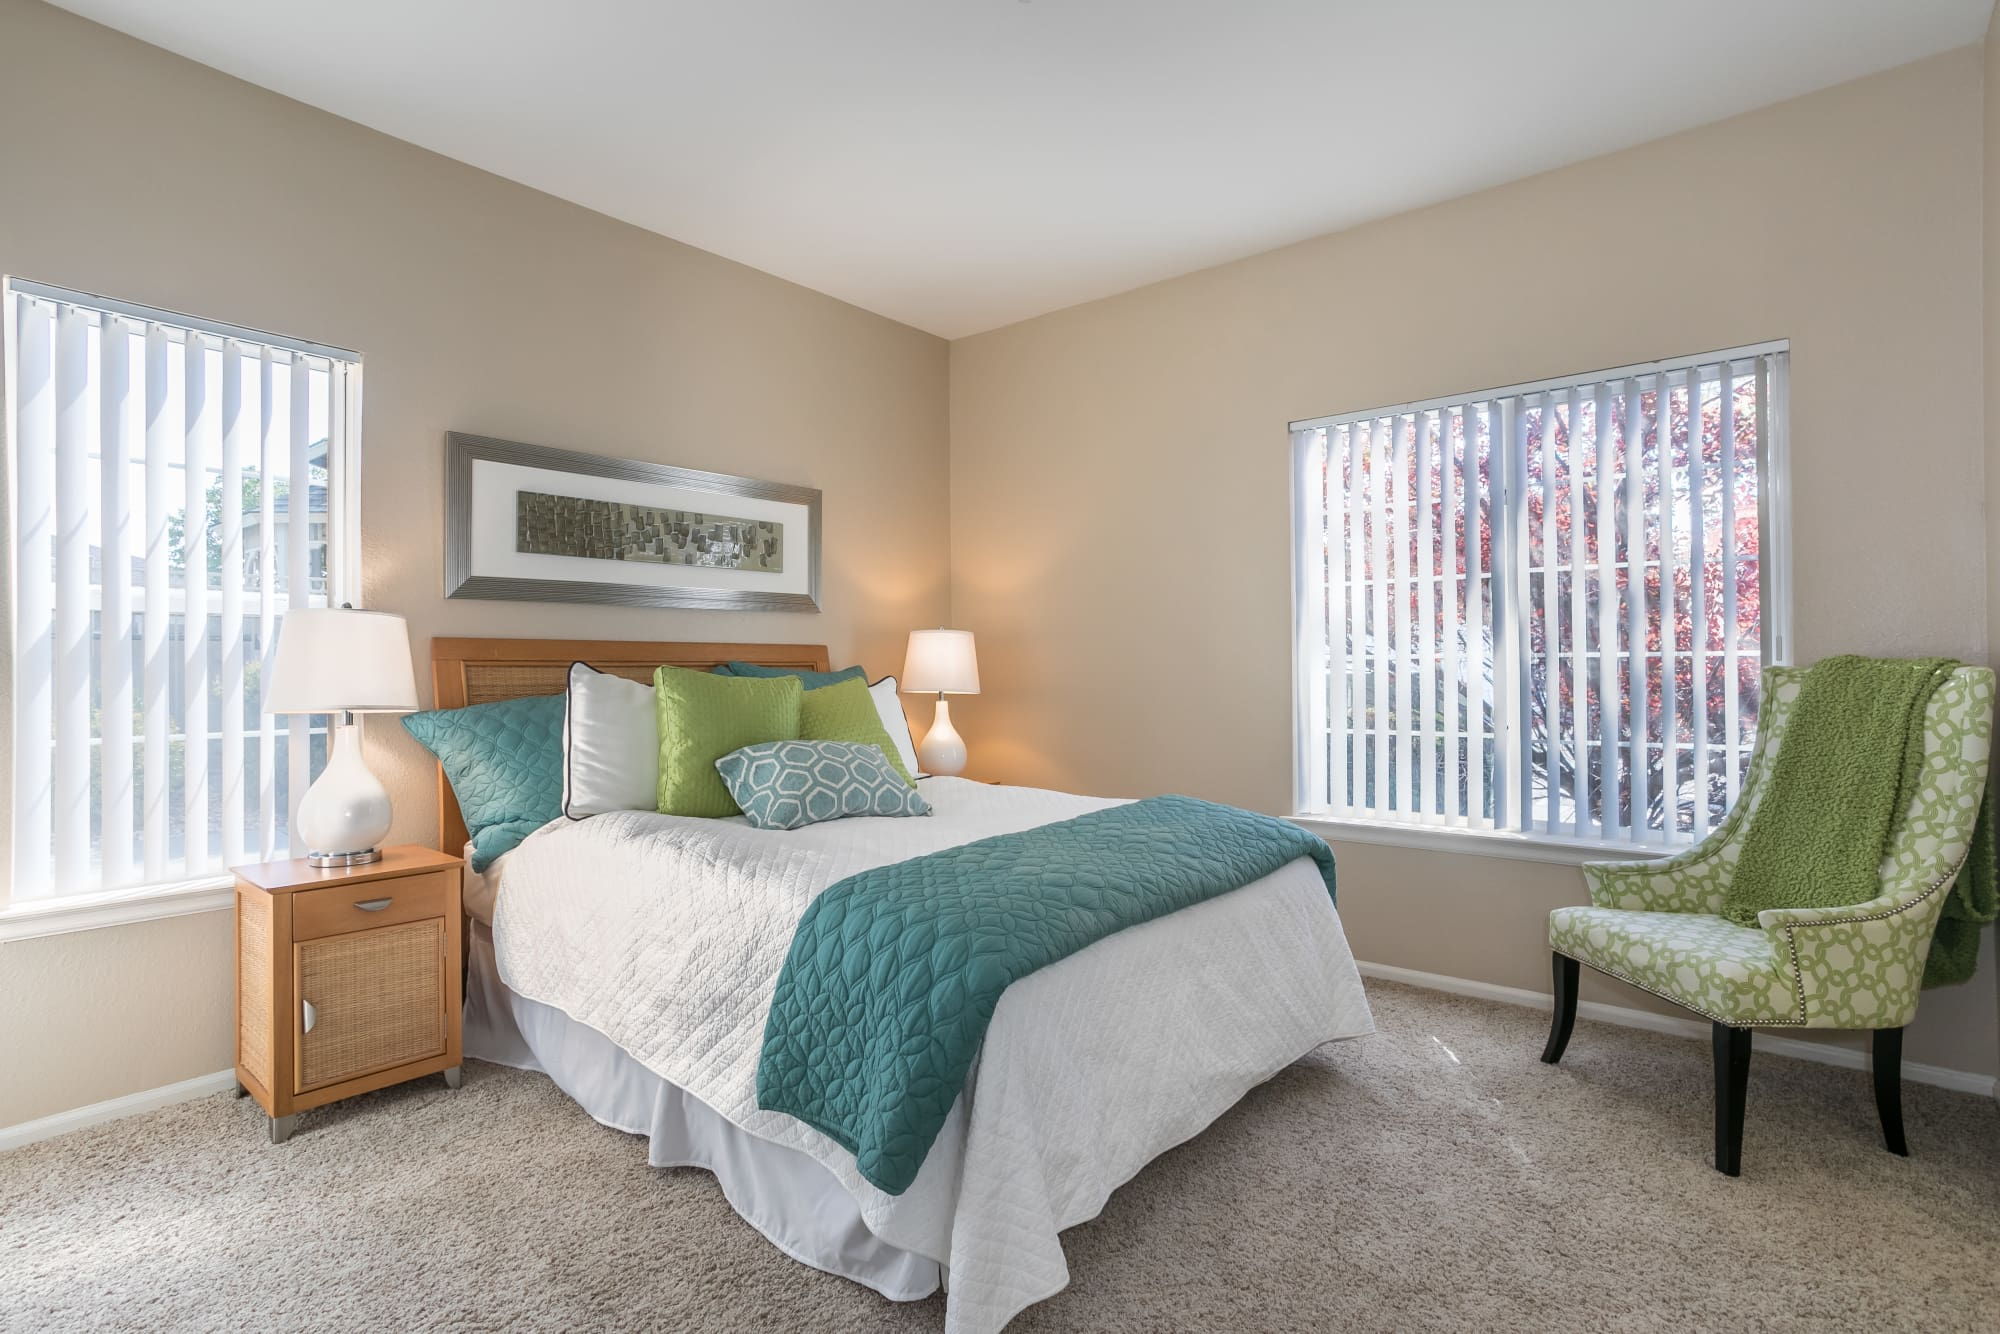 Well Decorated Bedroom at Westridge Apartments in Aurora, CO